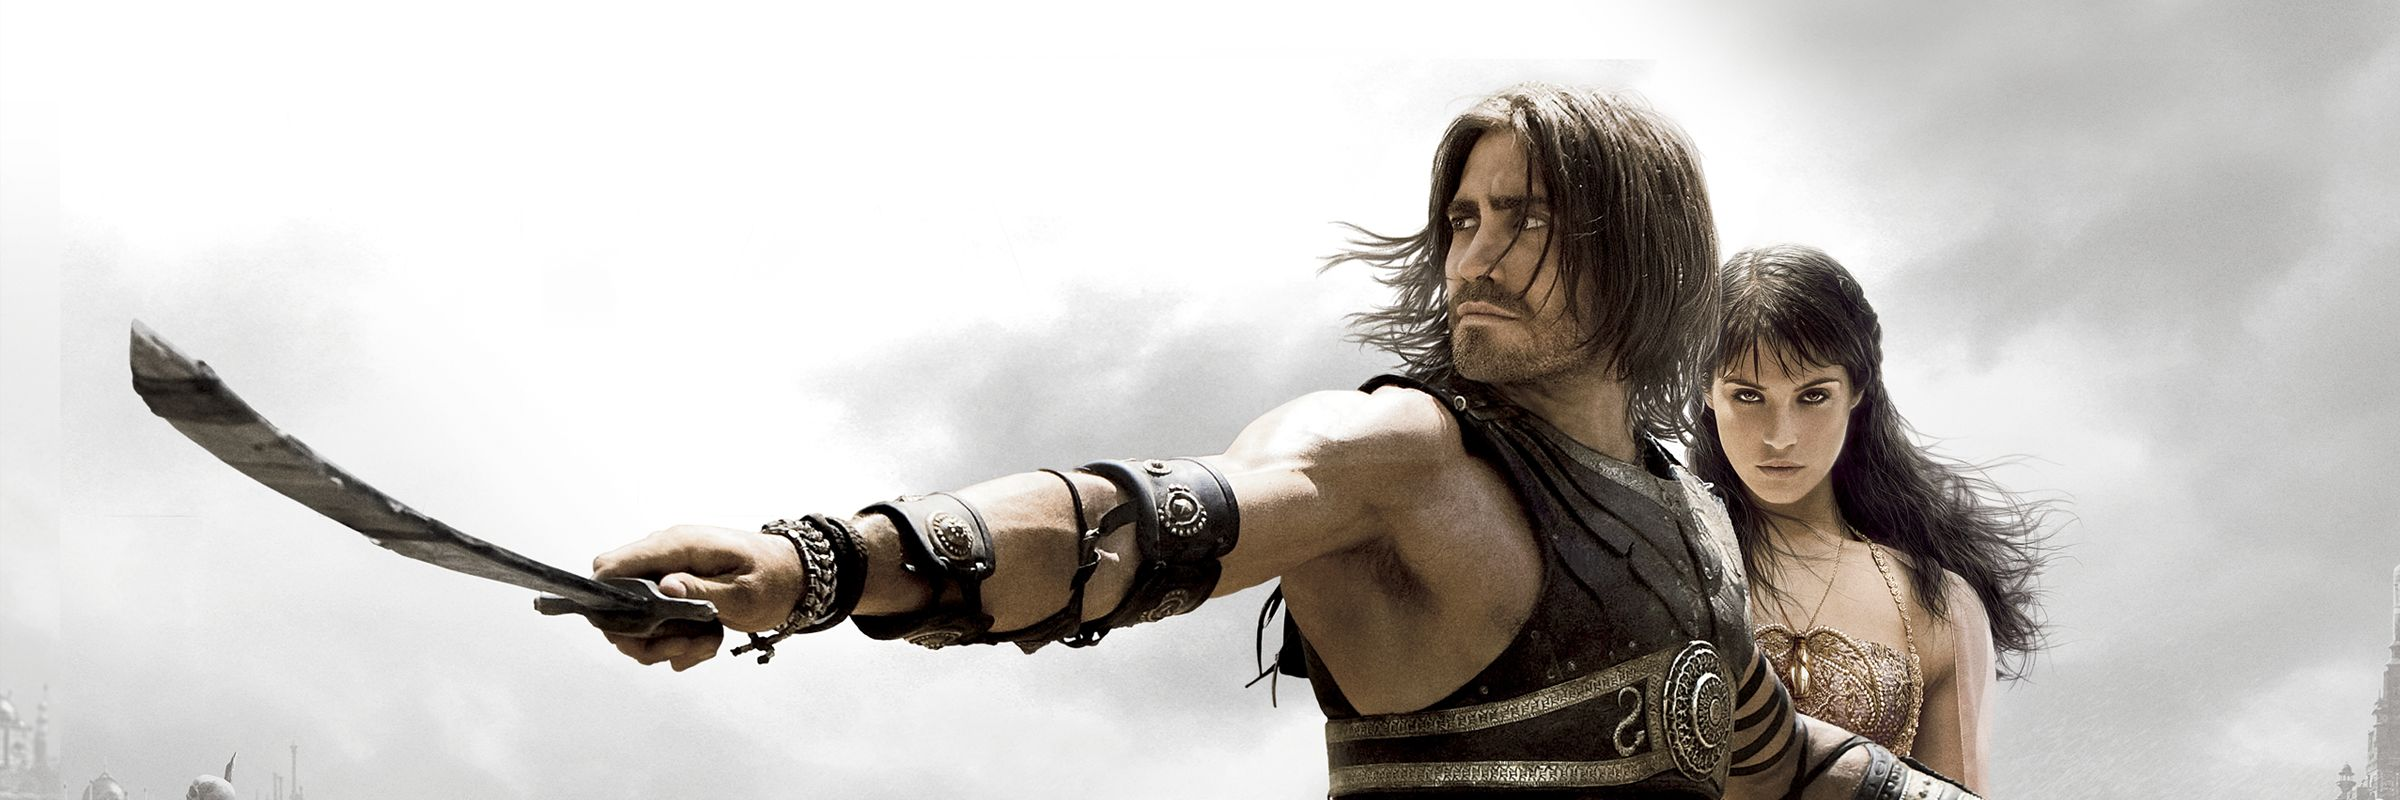 Prince Of Persia The Sands Of Time Full Movie Movies Anywhere